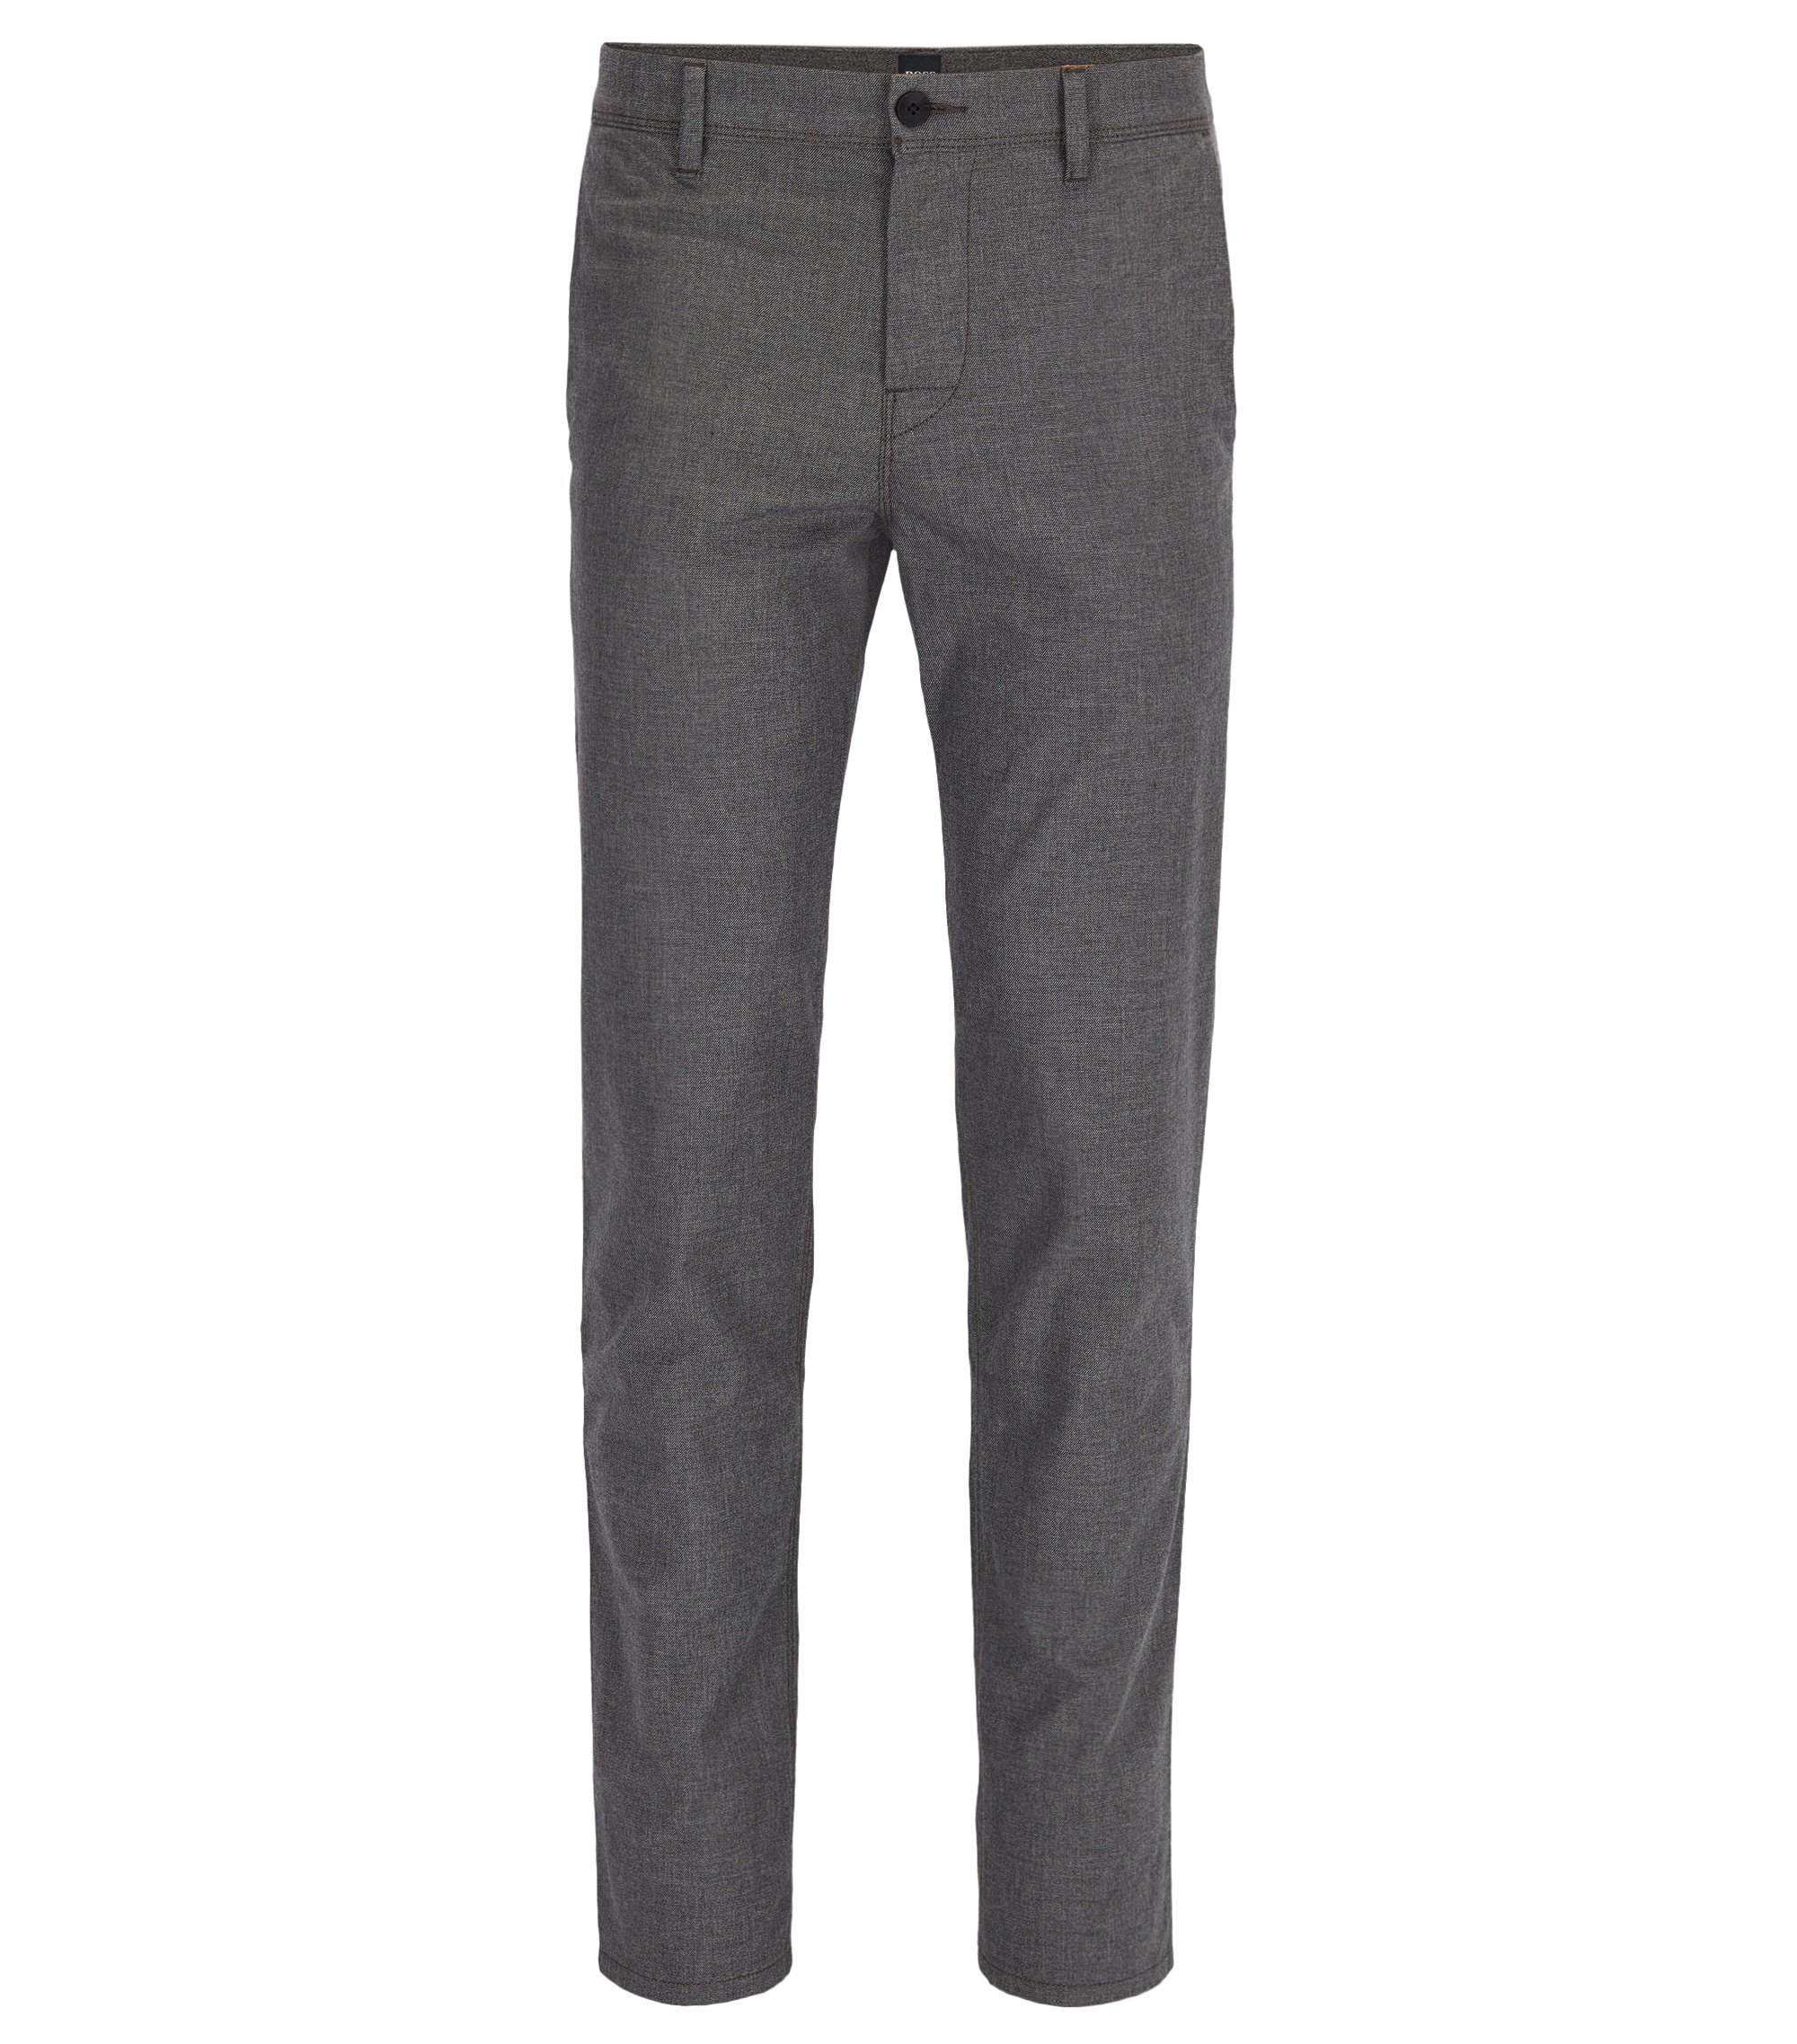 Pantalon Tapered Fit en coton stretch légèrement délavé, Anthracite